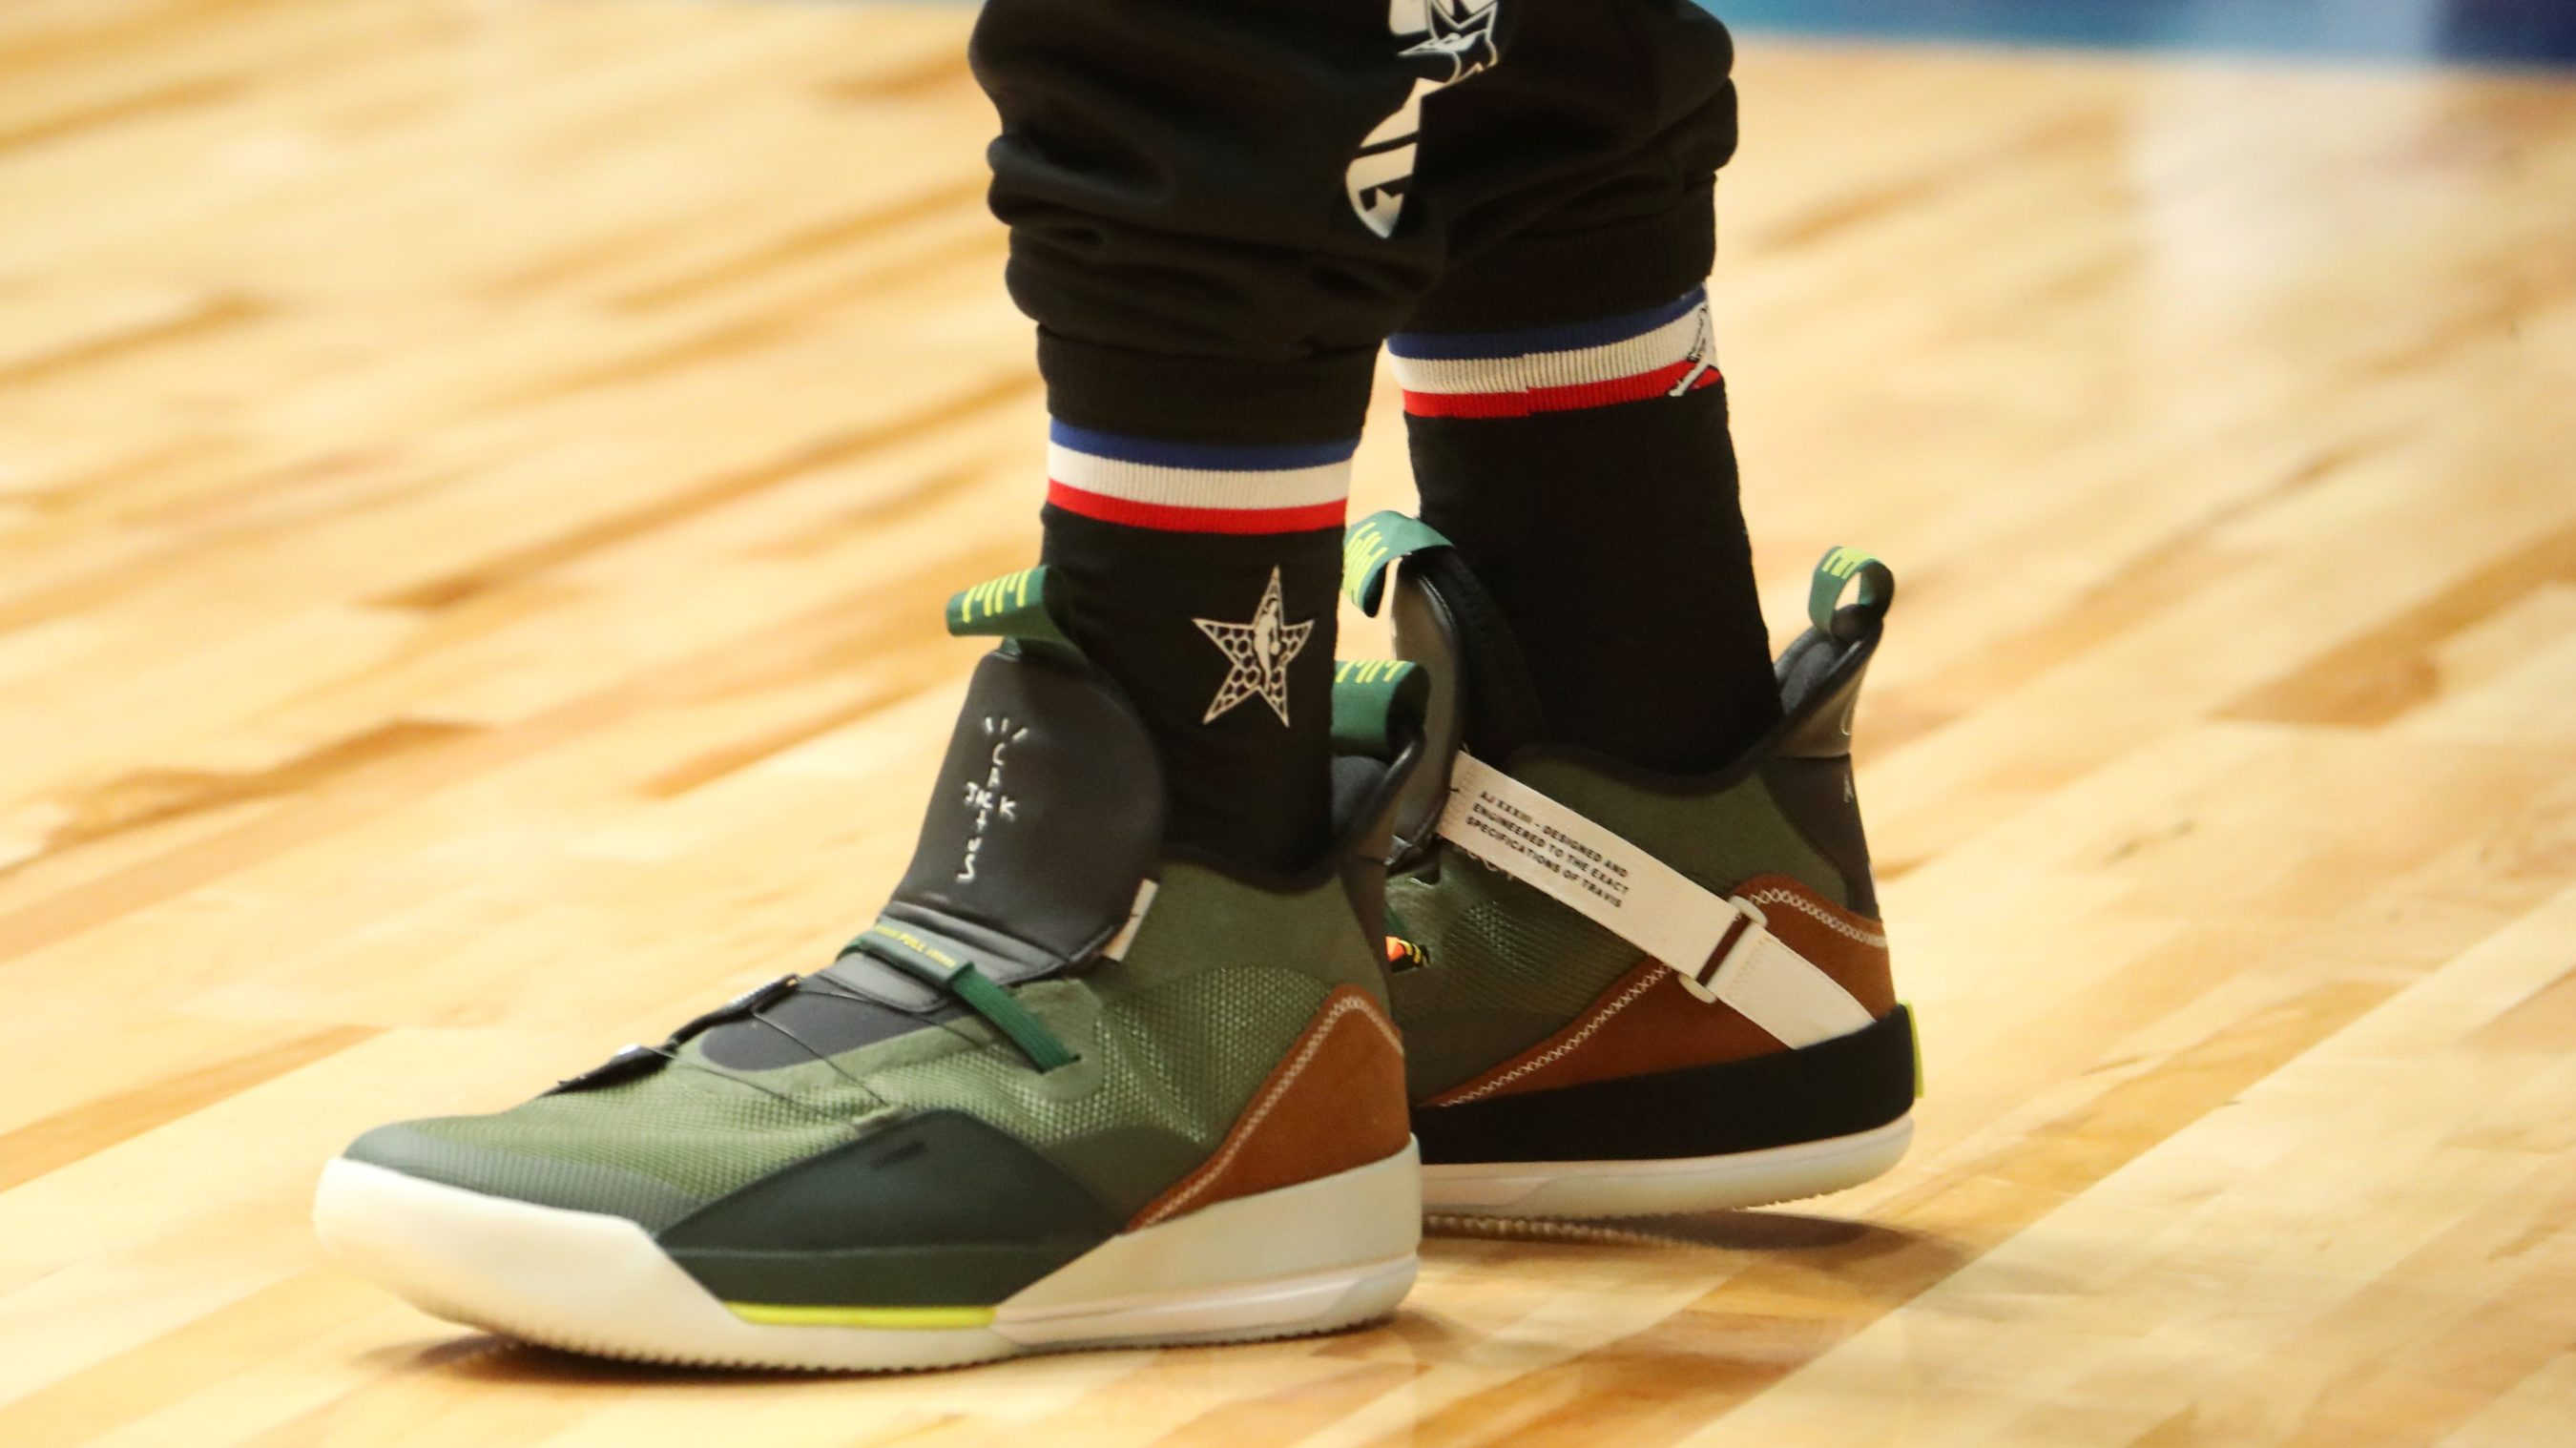 0ba6dad3f59640 The 23 hottest sneaker sightings of 2019 NBA All-Star Weekend